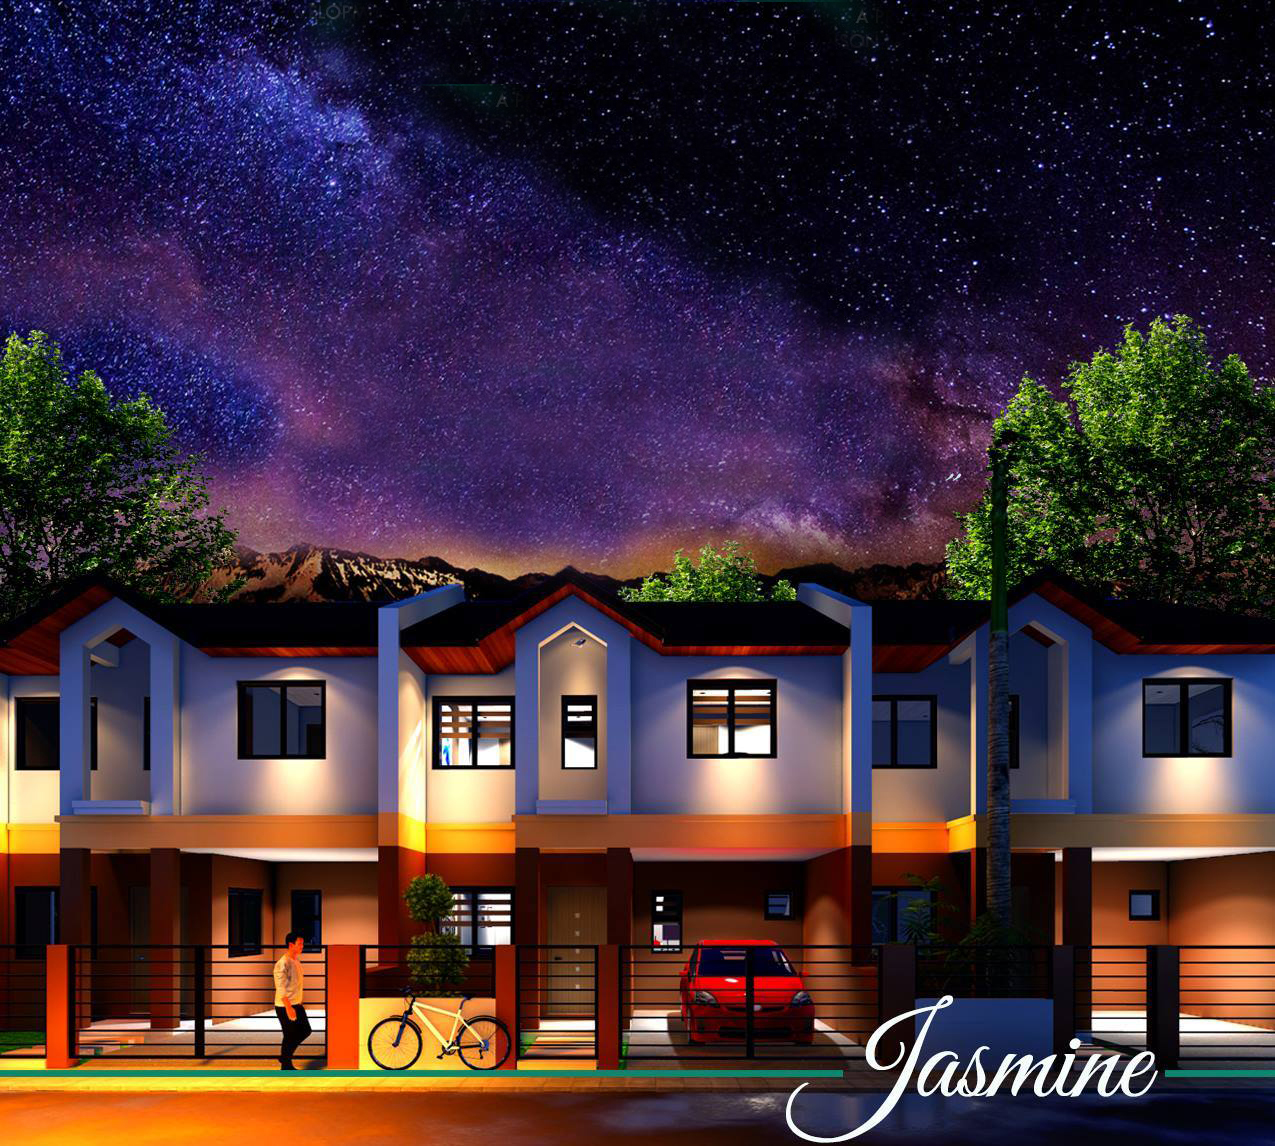 Villa Senorita - Jasmine Townhouse, Ma-a, Davao City For Sale